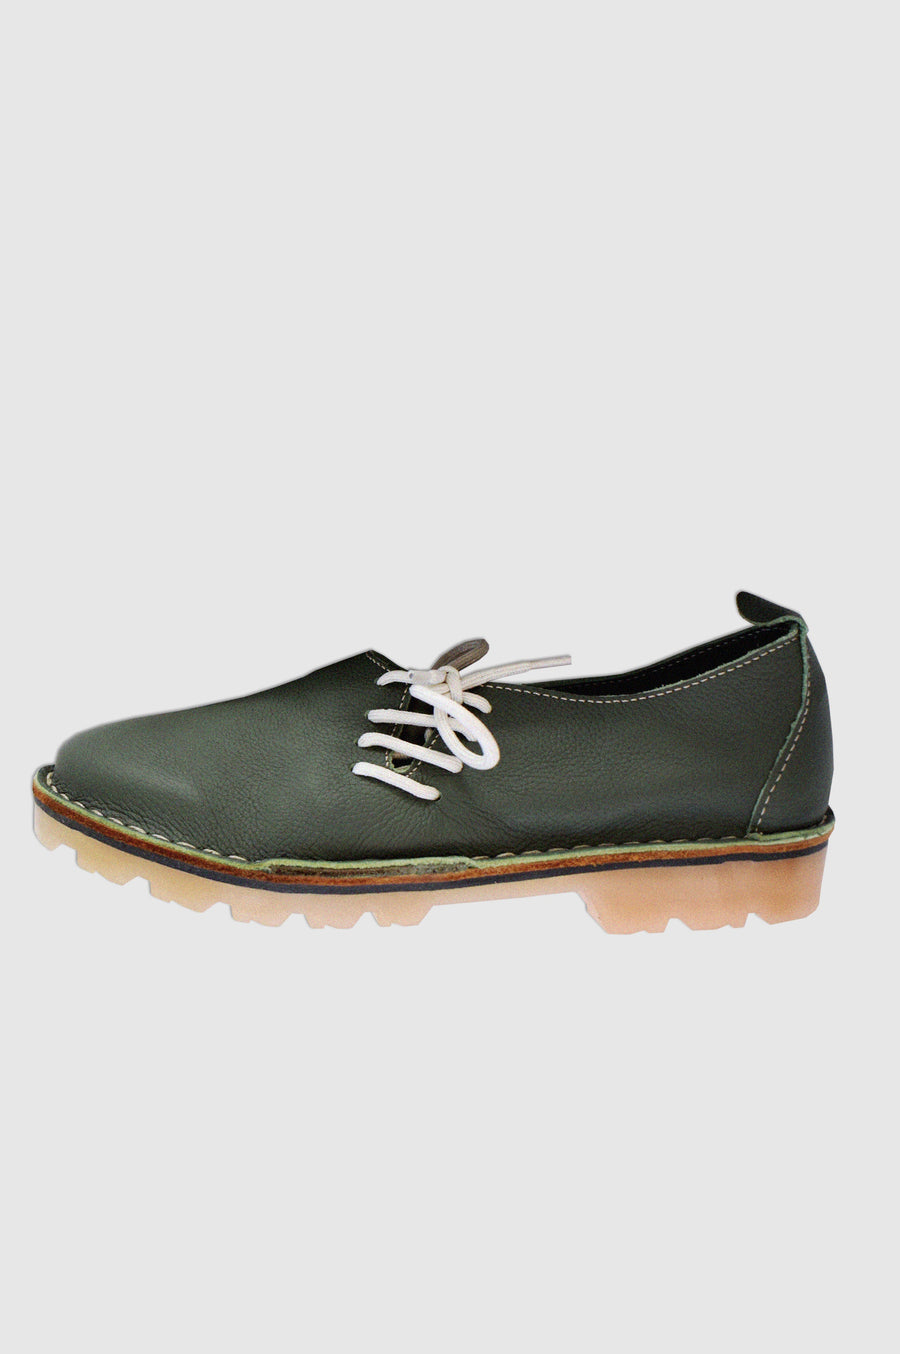 SHOES | LINDSAY SIDE VELLIES | SANTOS GREEN